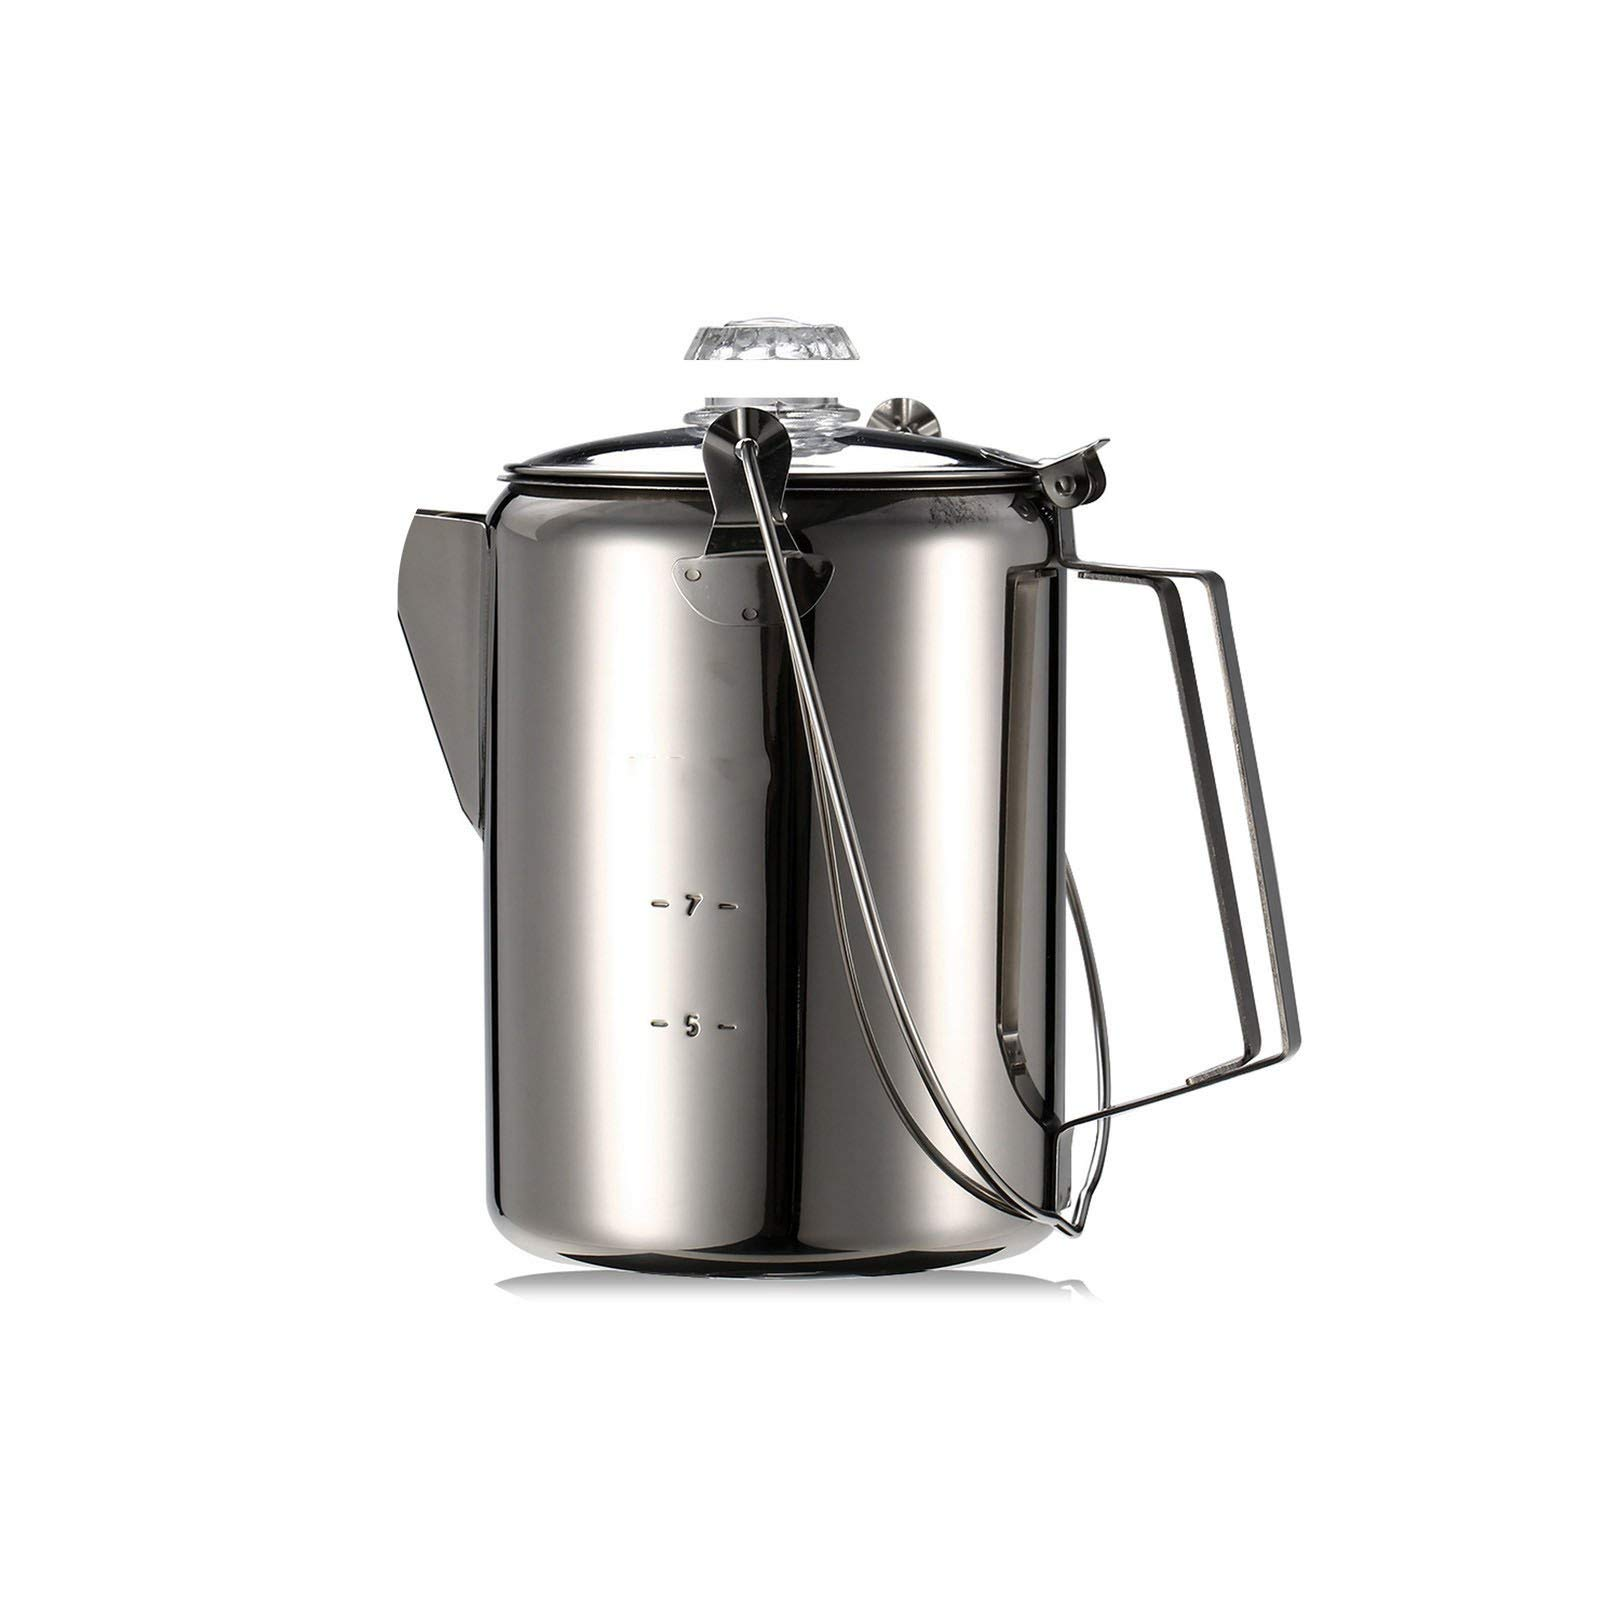 Coffee-Percolators Outdoor Camping Pot 9 Cup Stainless Steel Percolator Coffee Maker For Camping Home Kitchen Camping,As Picture 1